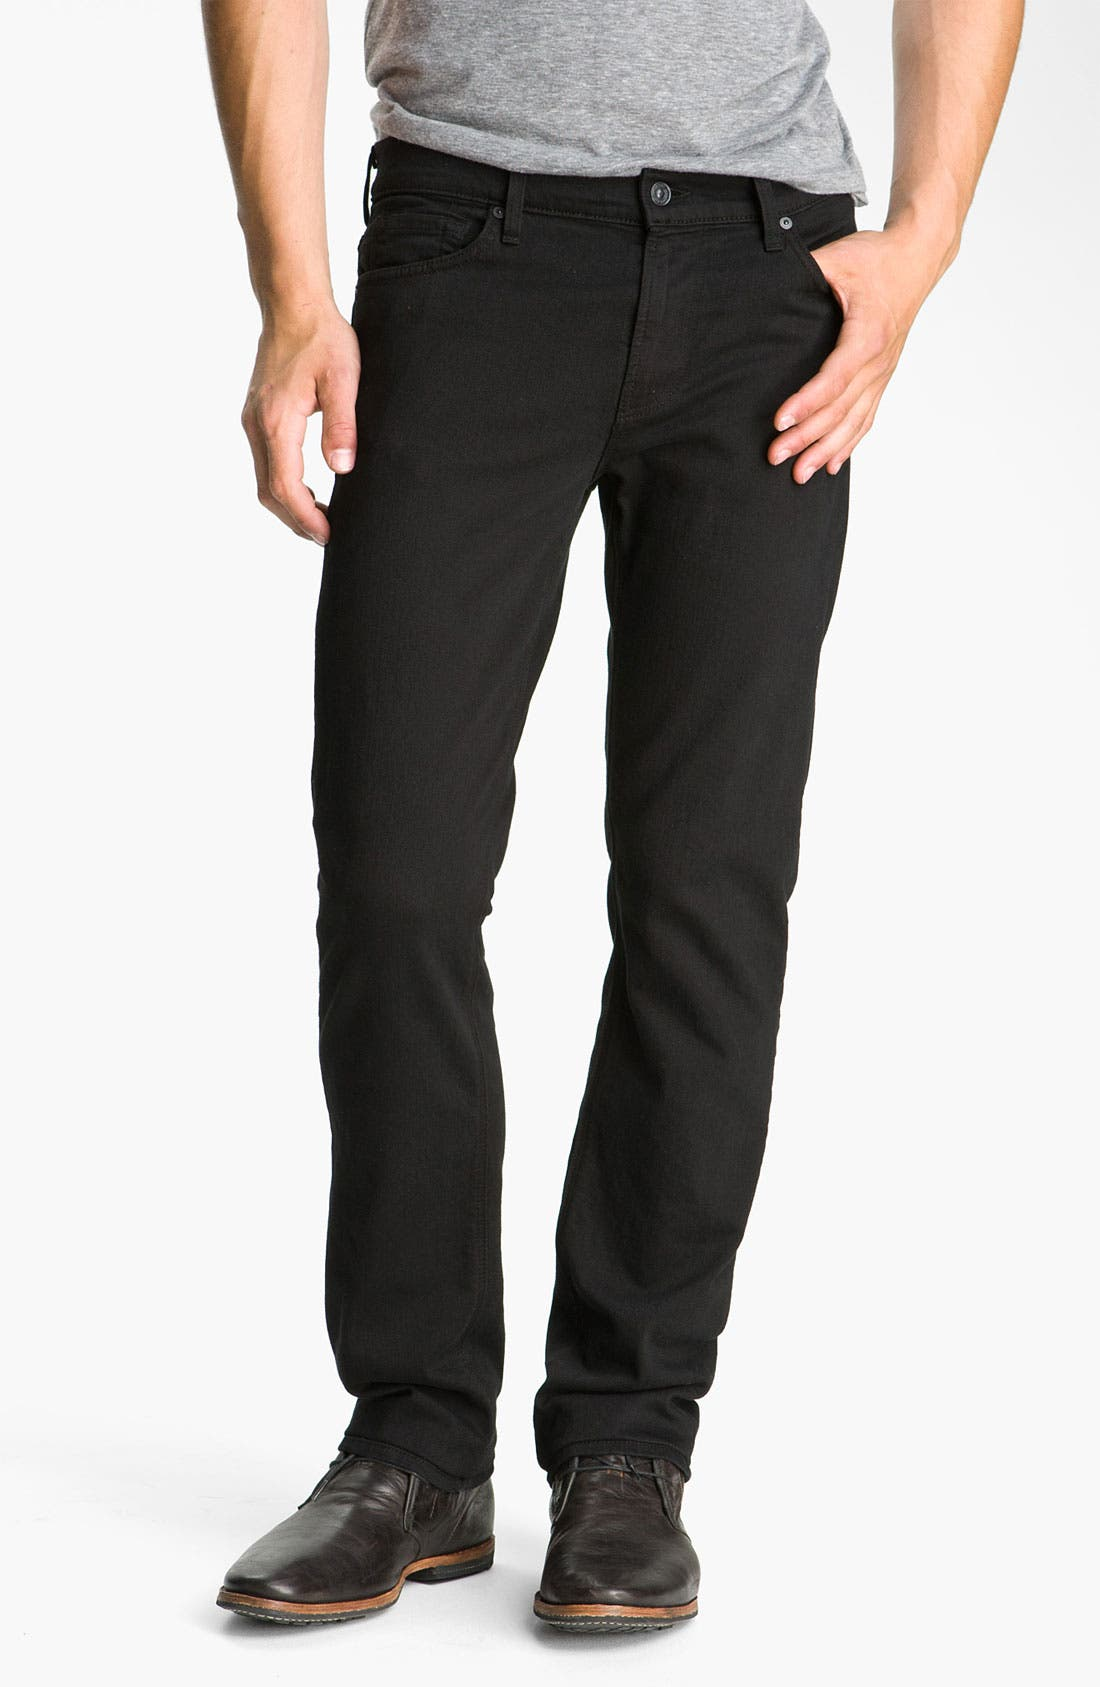 Main Image - 7 For All Mankind® 'Slimmy' Slim Fit Jeans (Black Out)